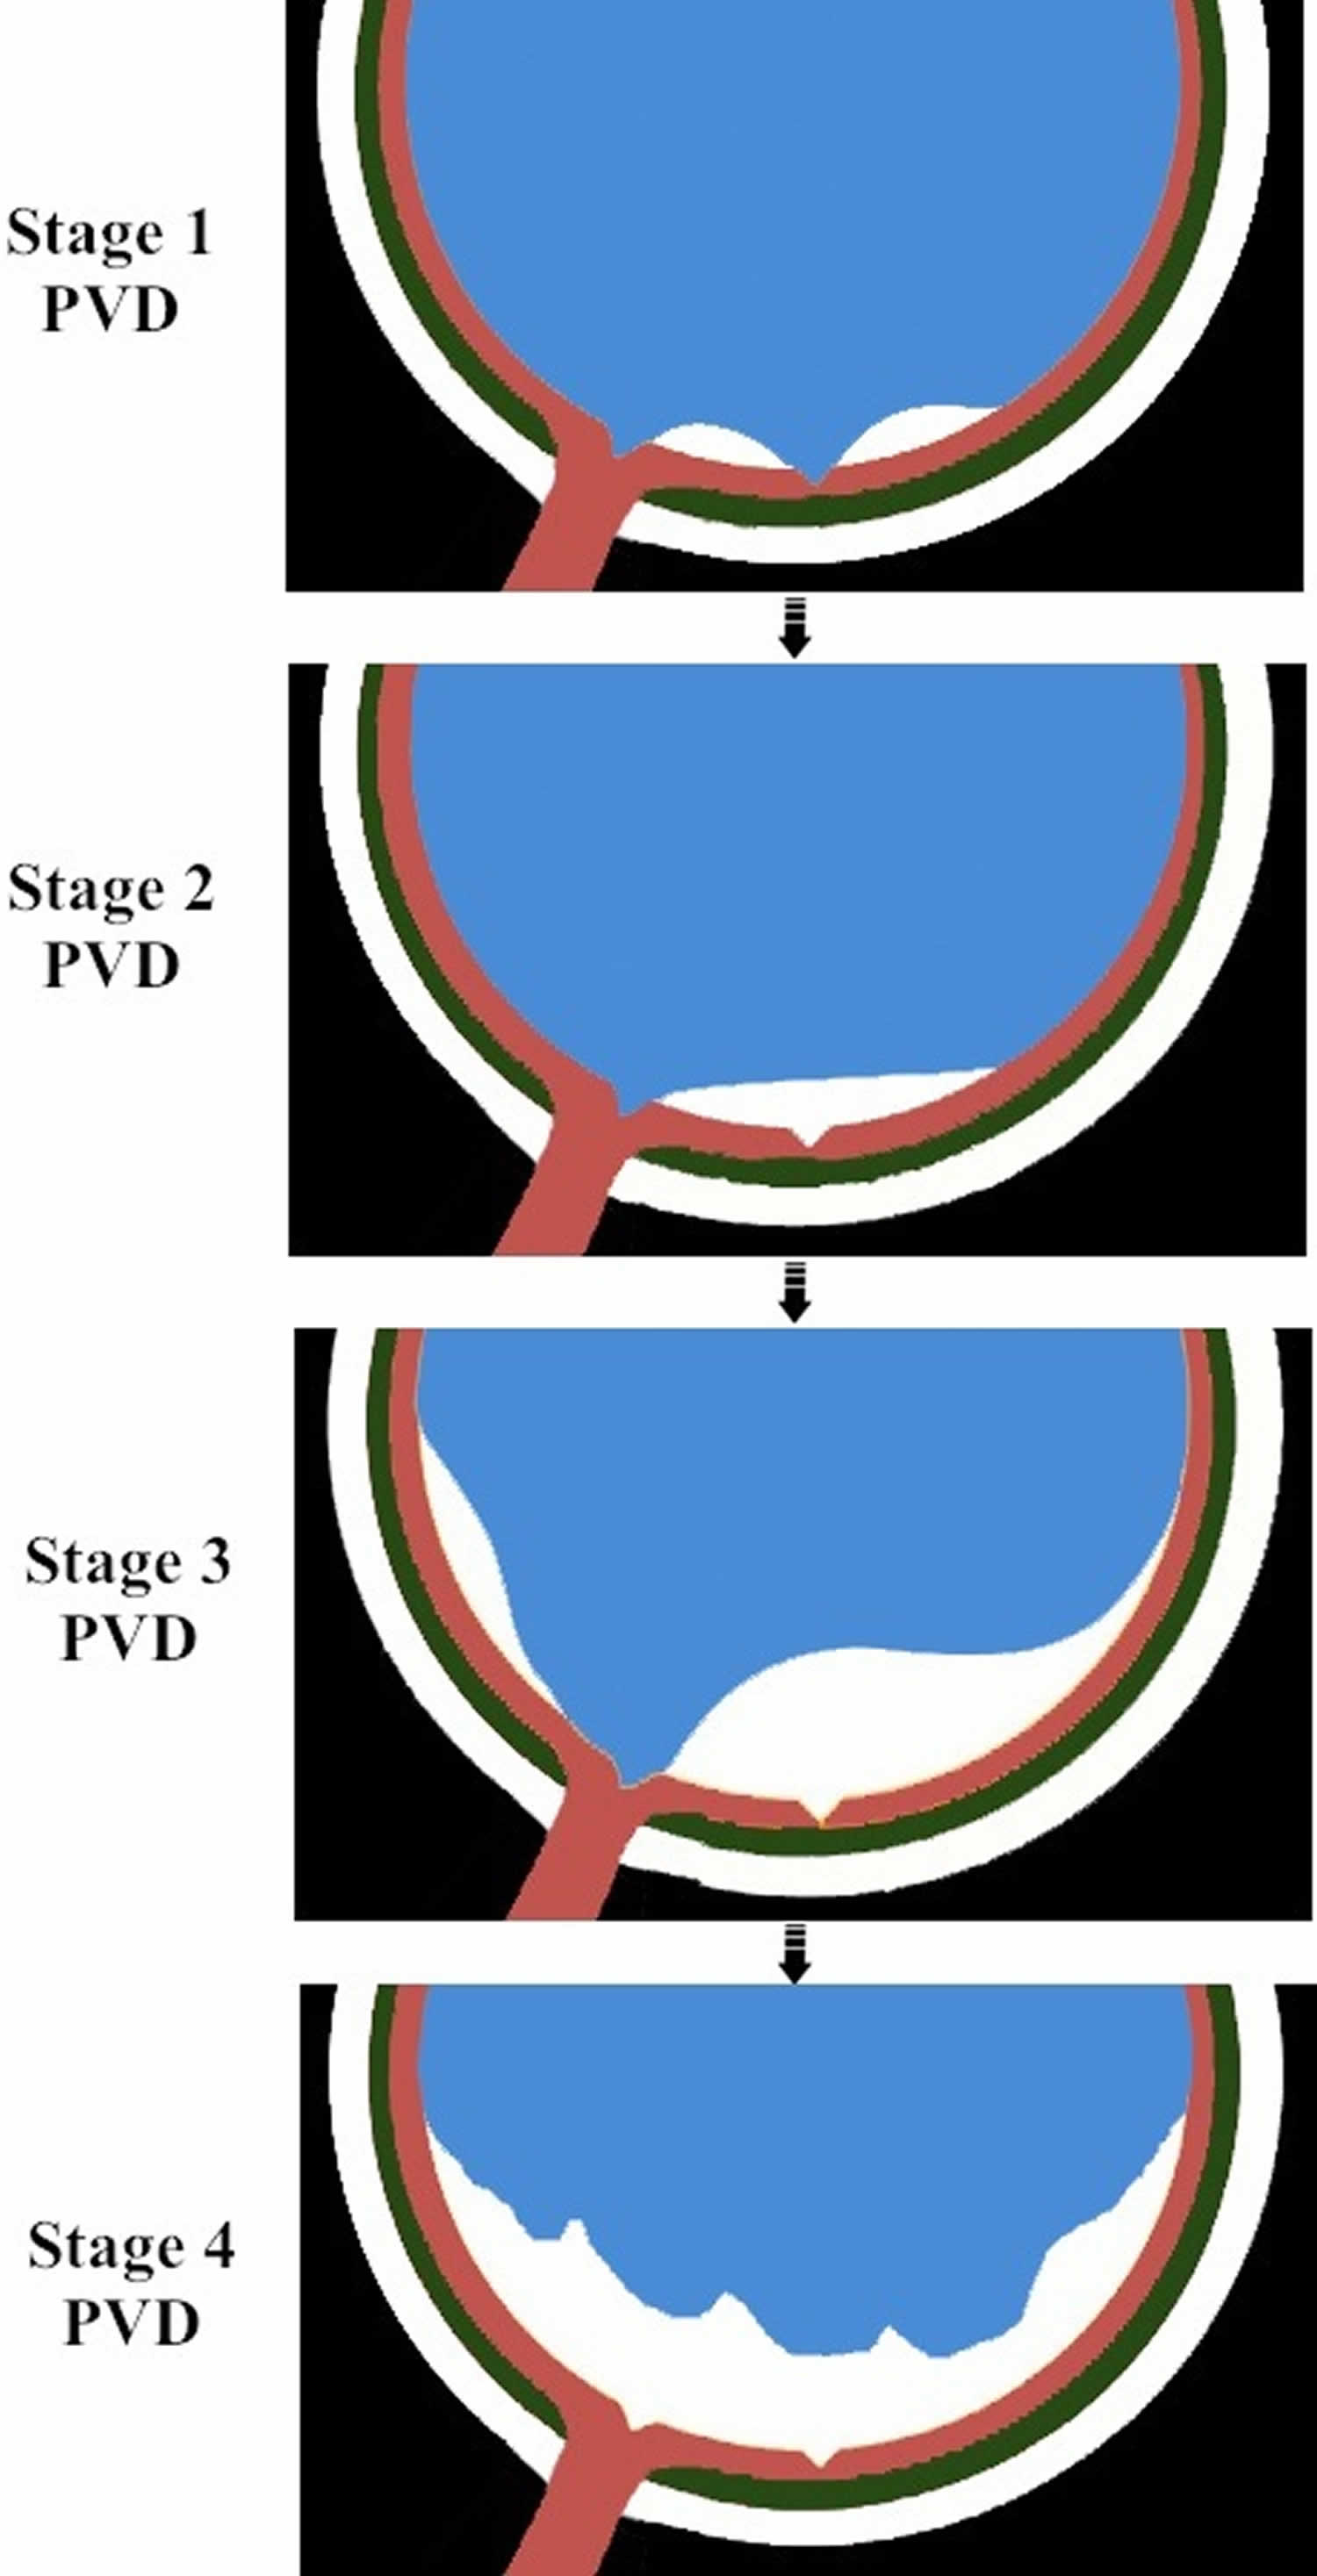 Evolution of normal posterior vitreous detachment